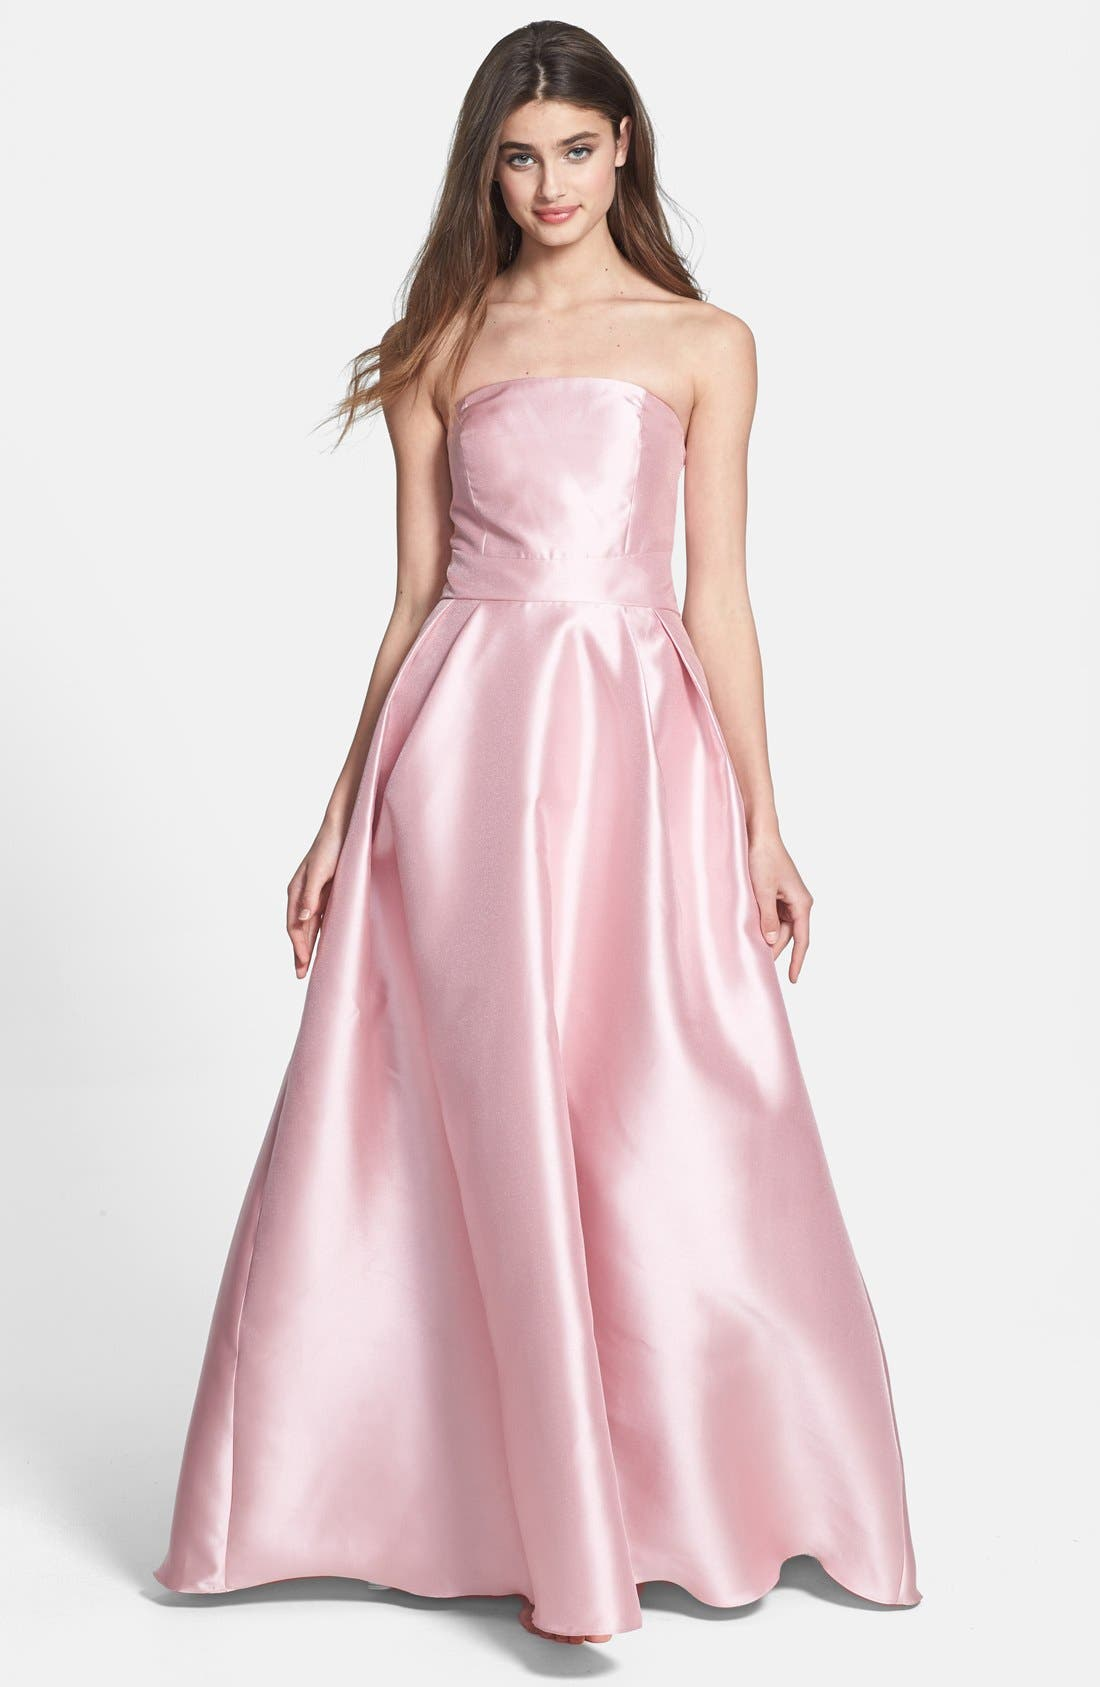 Alternate Image 1 Selected - ML Monique Lhuillier Bridesmaids Satin A-Line Gown (Nordstrom Exclusive)